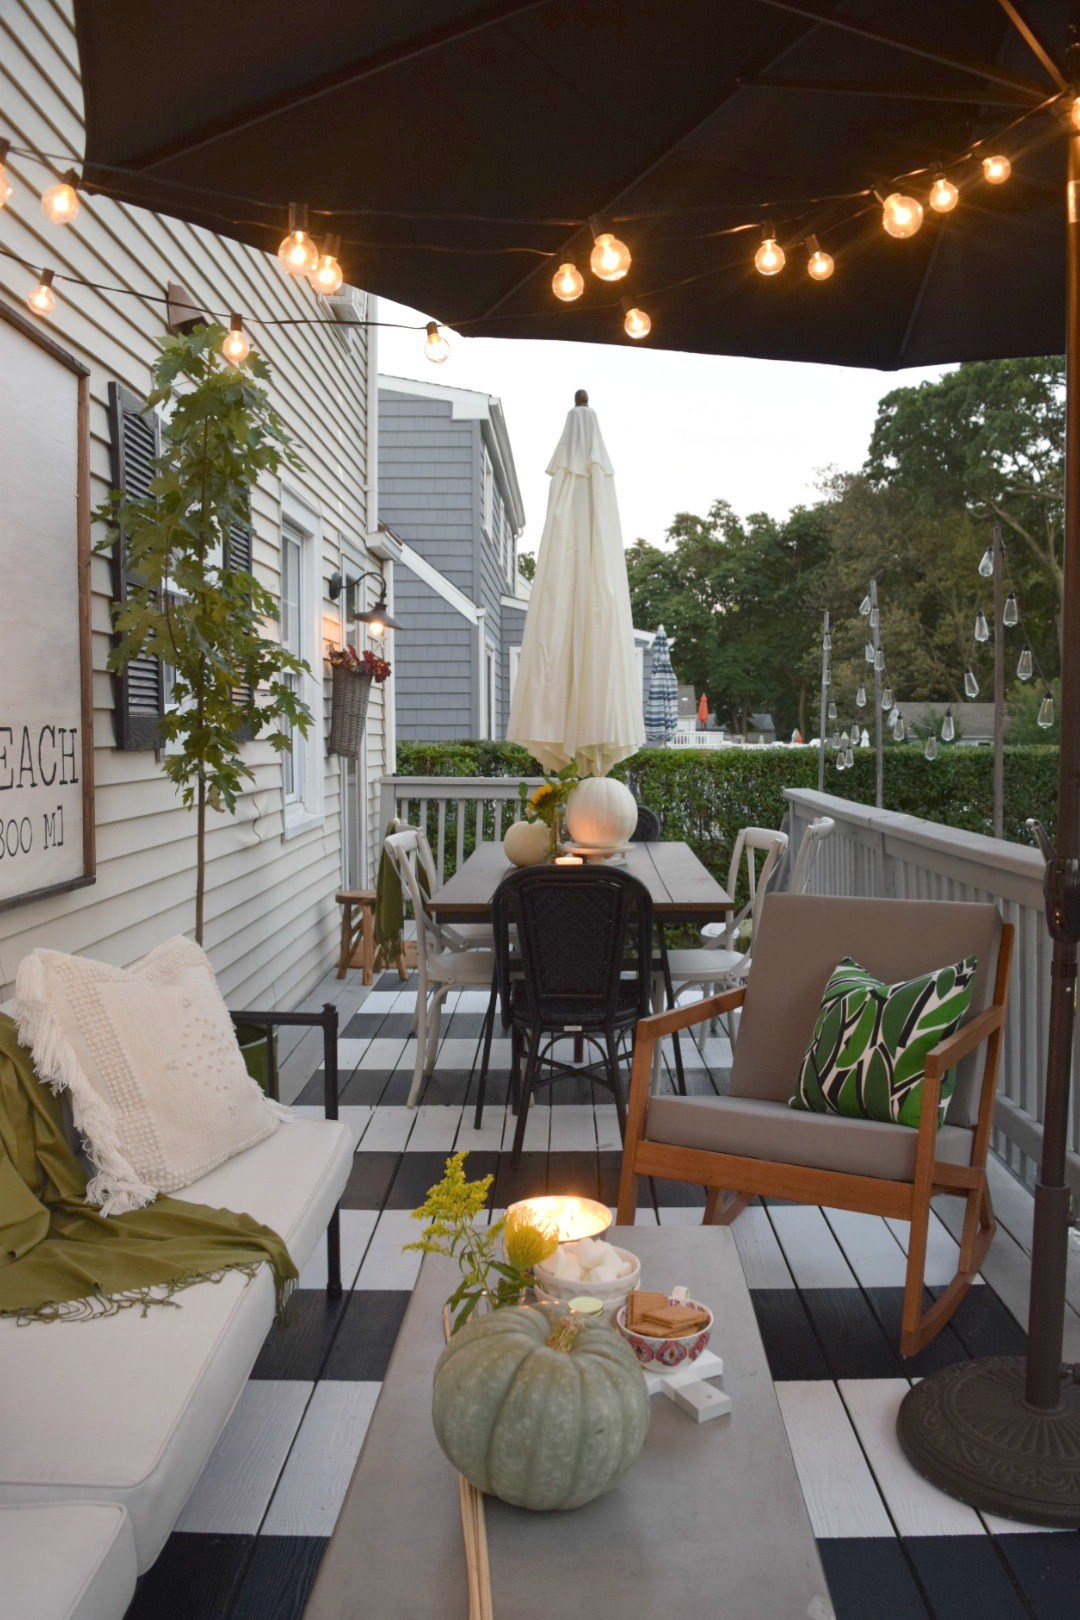 This small, long patio space is a perfect place to hang out and grab a few drinks with friends